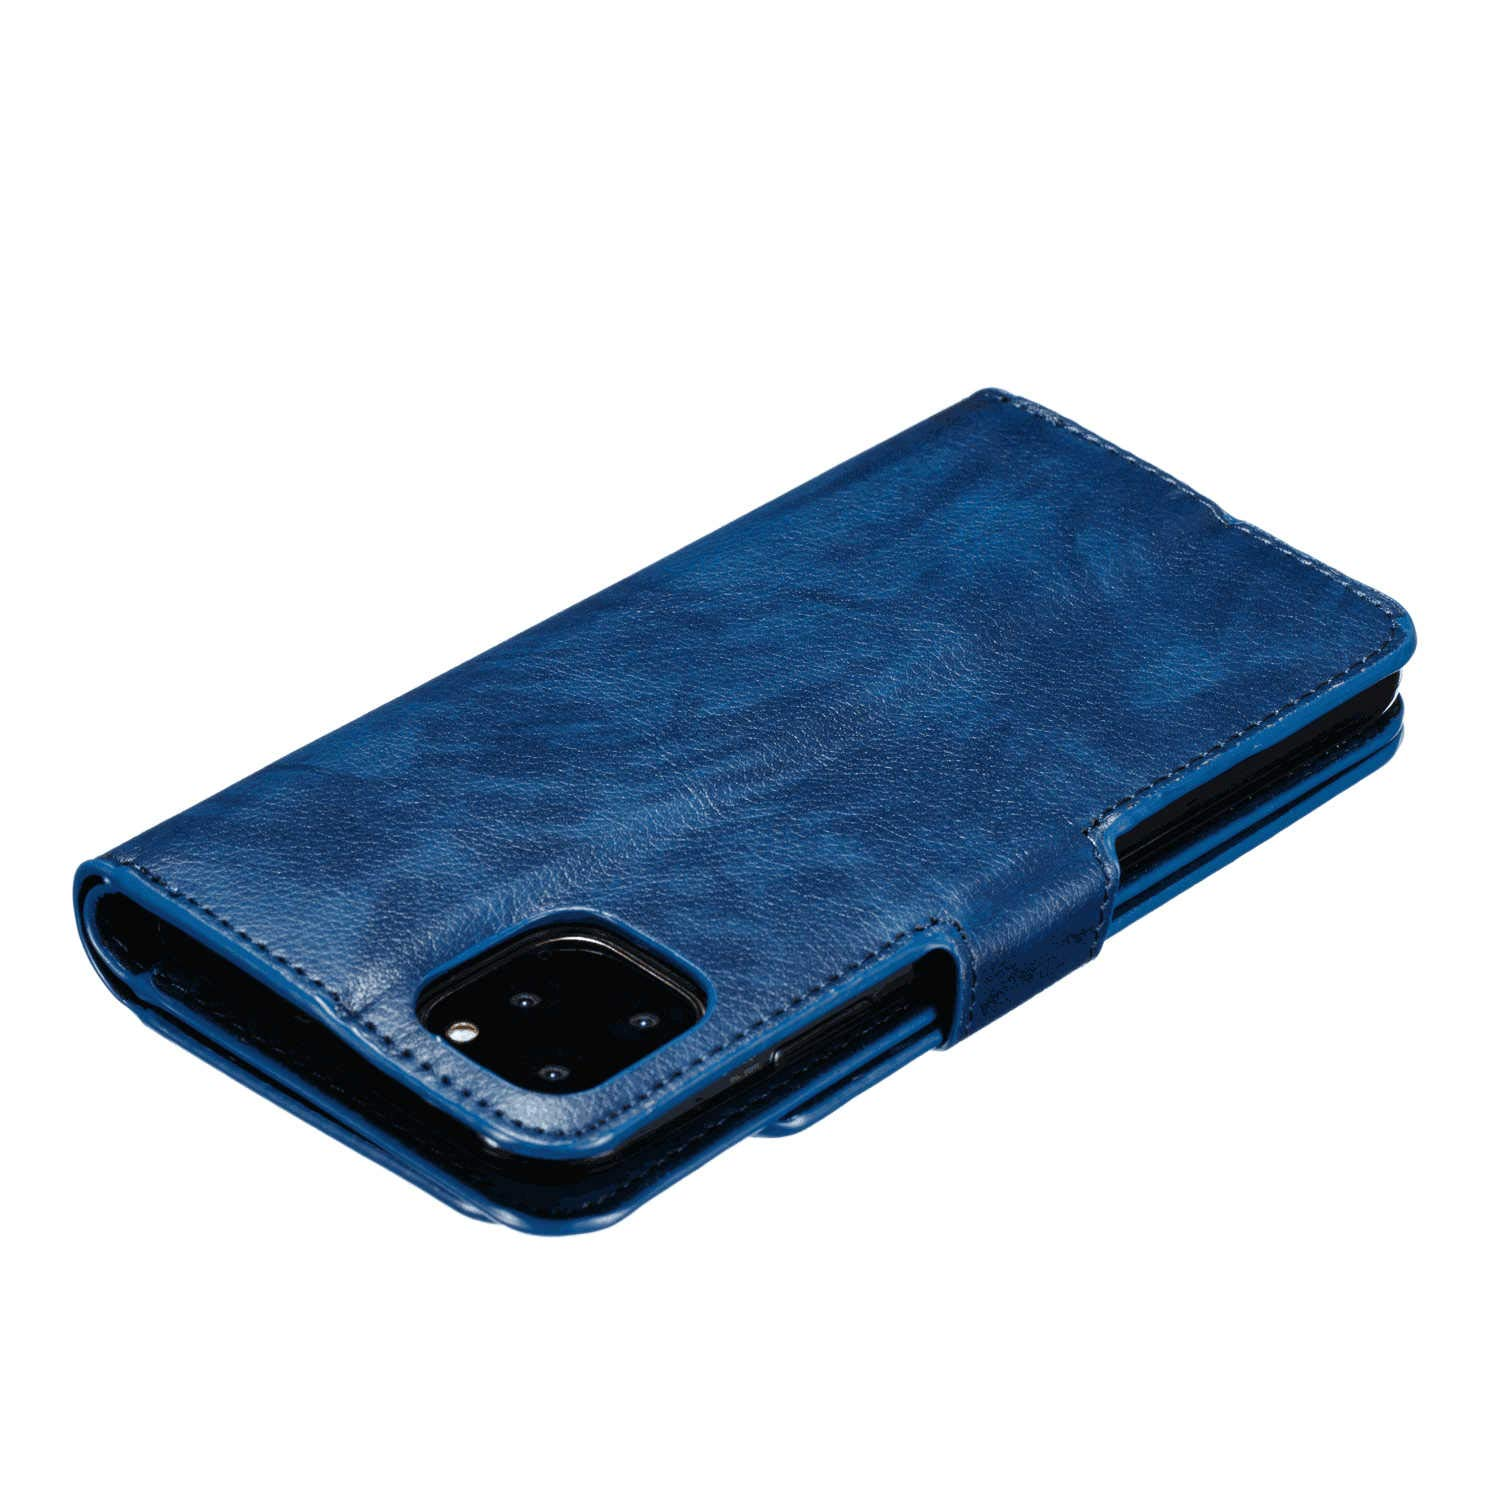 Extra-Protective Card Holders Kickstand Leather Cover Wallet for Samsung Galaxy S20 Flip Case Fit for Samsung Galaxy S20